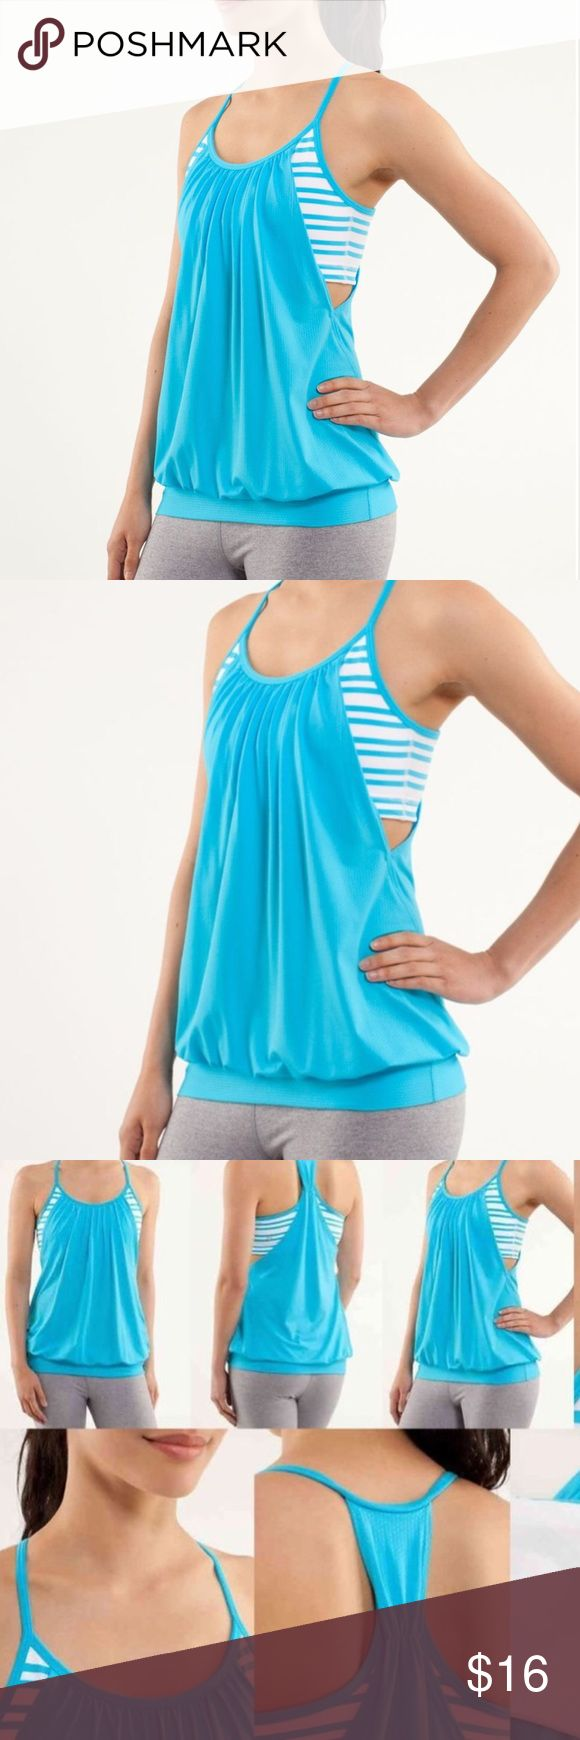 Lululemon No Limits Tank - Twin Stripe Spry Blue 4 This tank is in general good condition and is preloved, and has a faint stain on the front, shown in the last picture. I've never tried to get the stain out. Lululemon No Limits Tank Spry Blue / Twin Stripe Spry Blue. With built-in Flow Y bra/ no cups. Key features: mesh panels placed in your high-sweat zones help you stay cool and dry breathable Circle Mesh fabric is moisture-wicking the wide band around the hips keeps the tank in place…